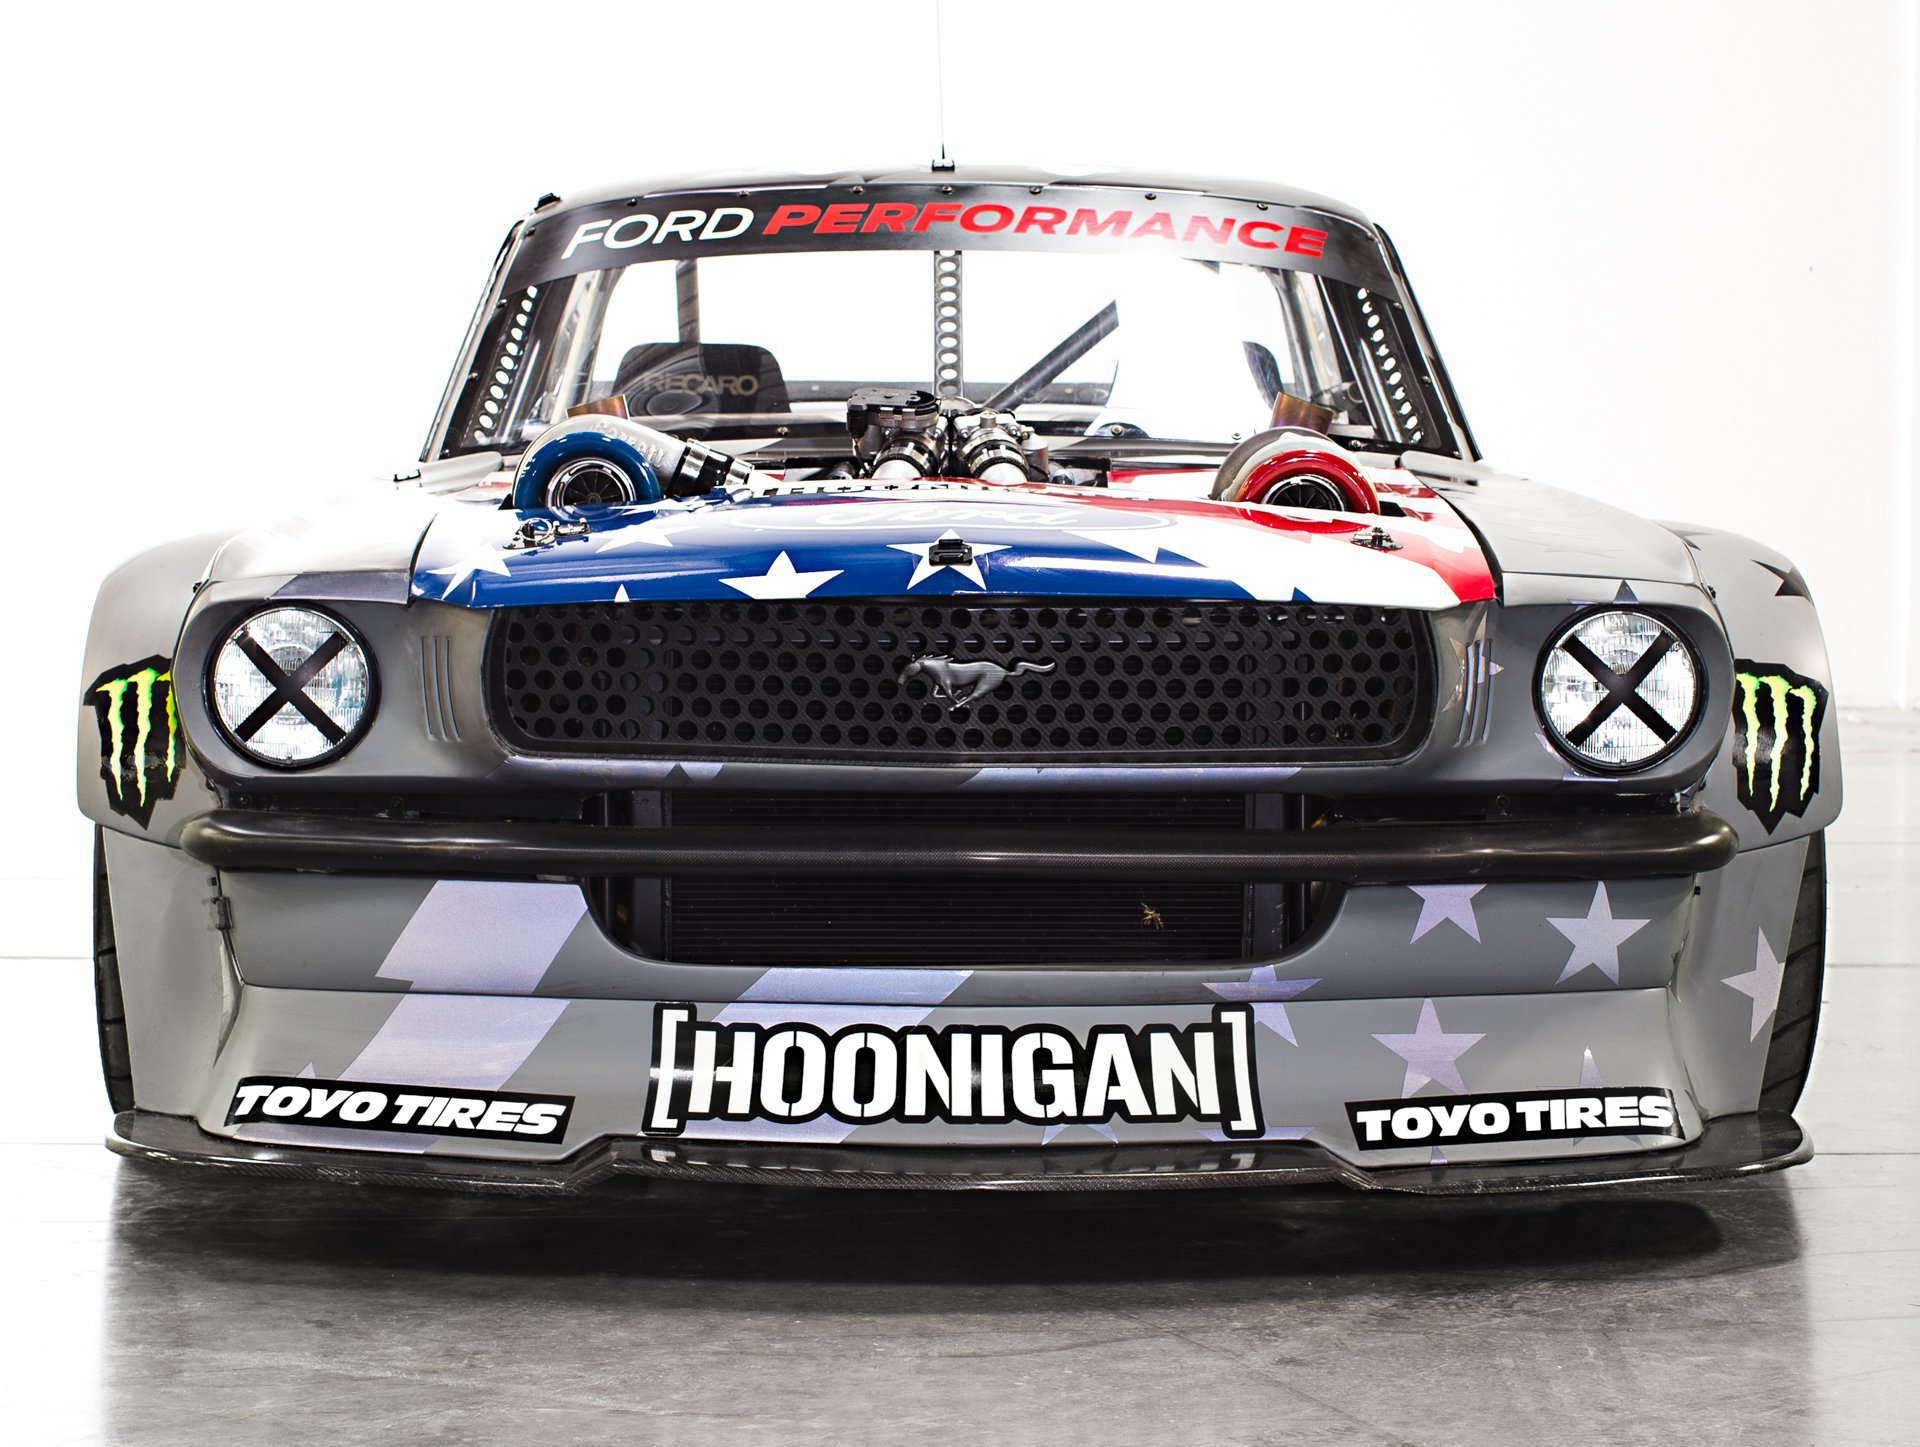 Ken Block's Bonkers 1965 Hoonicorn Mustang Now has 1,400 HP